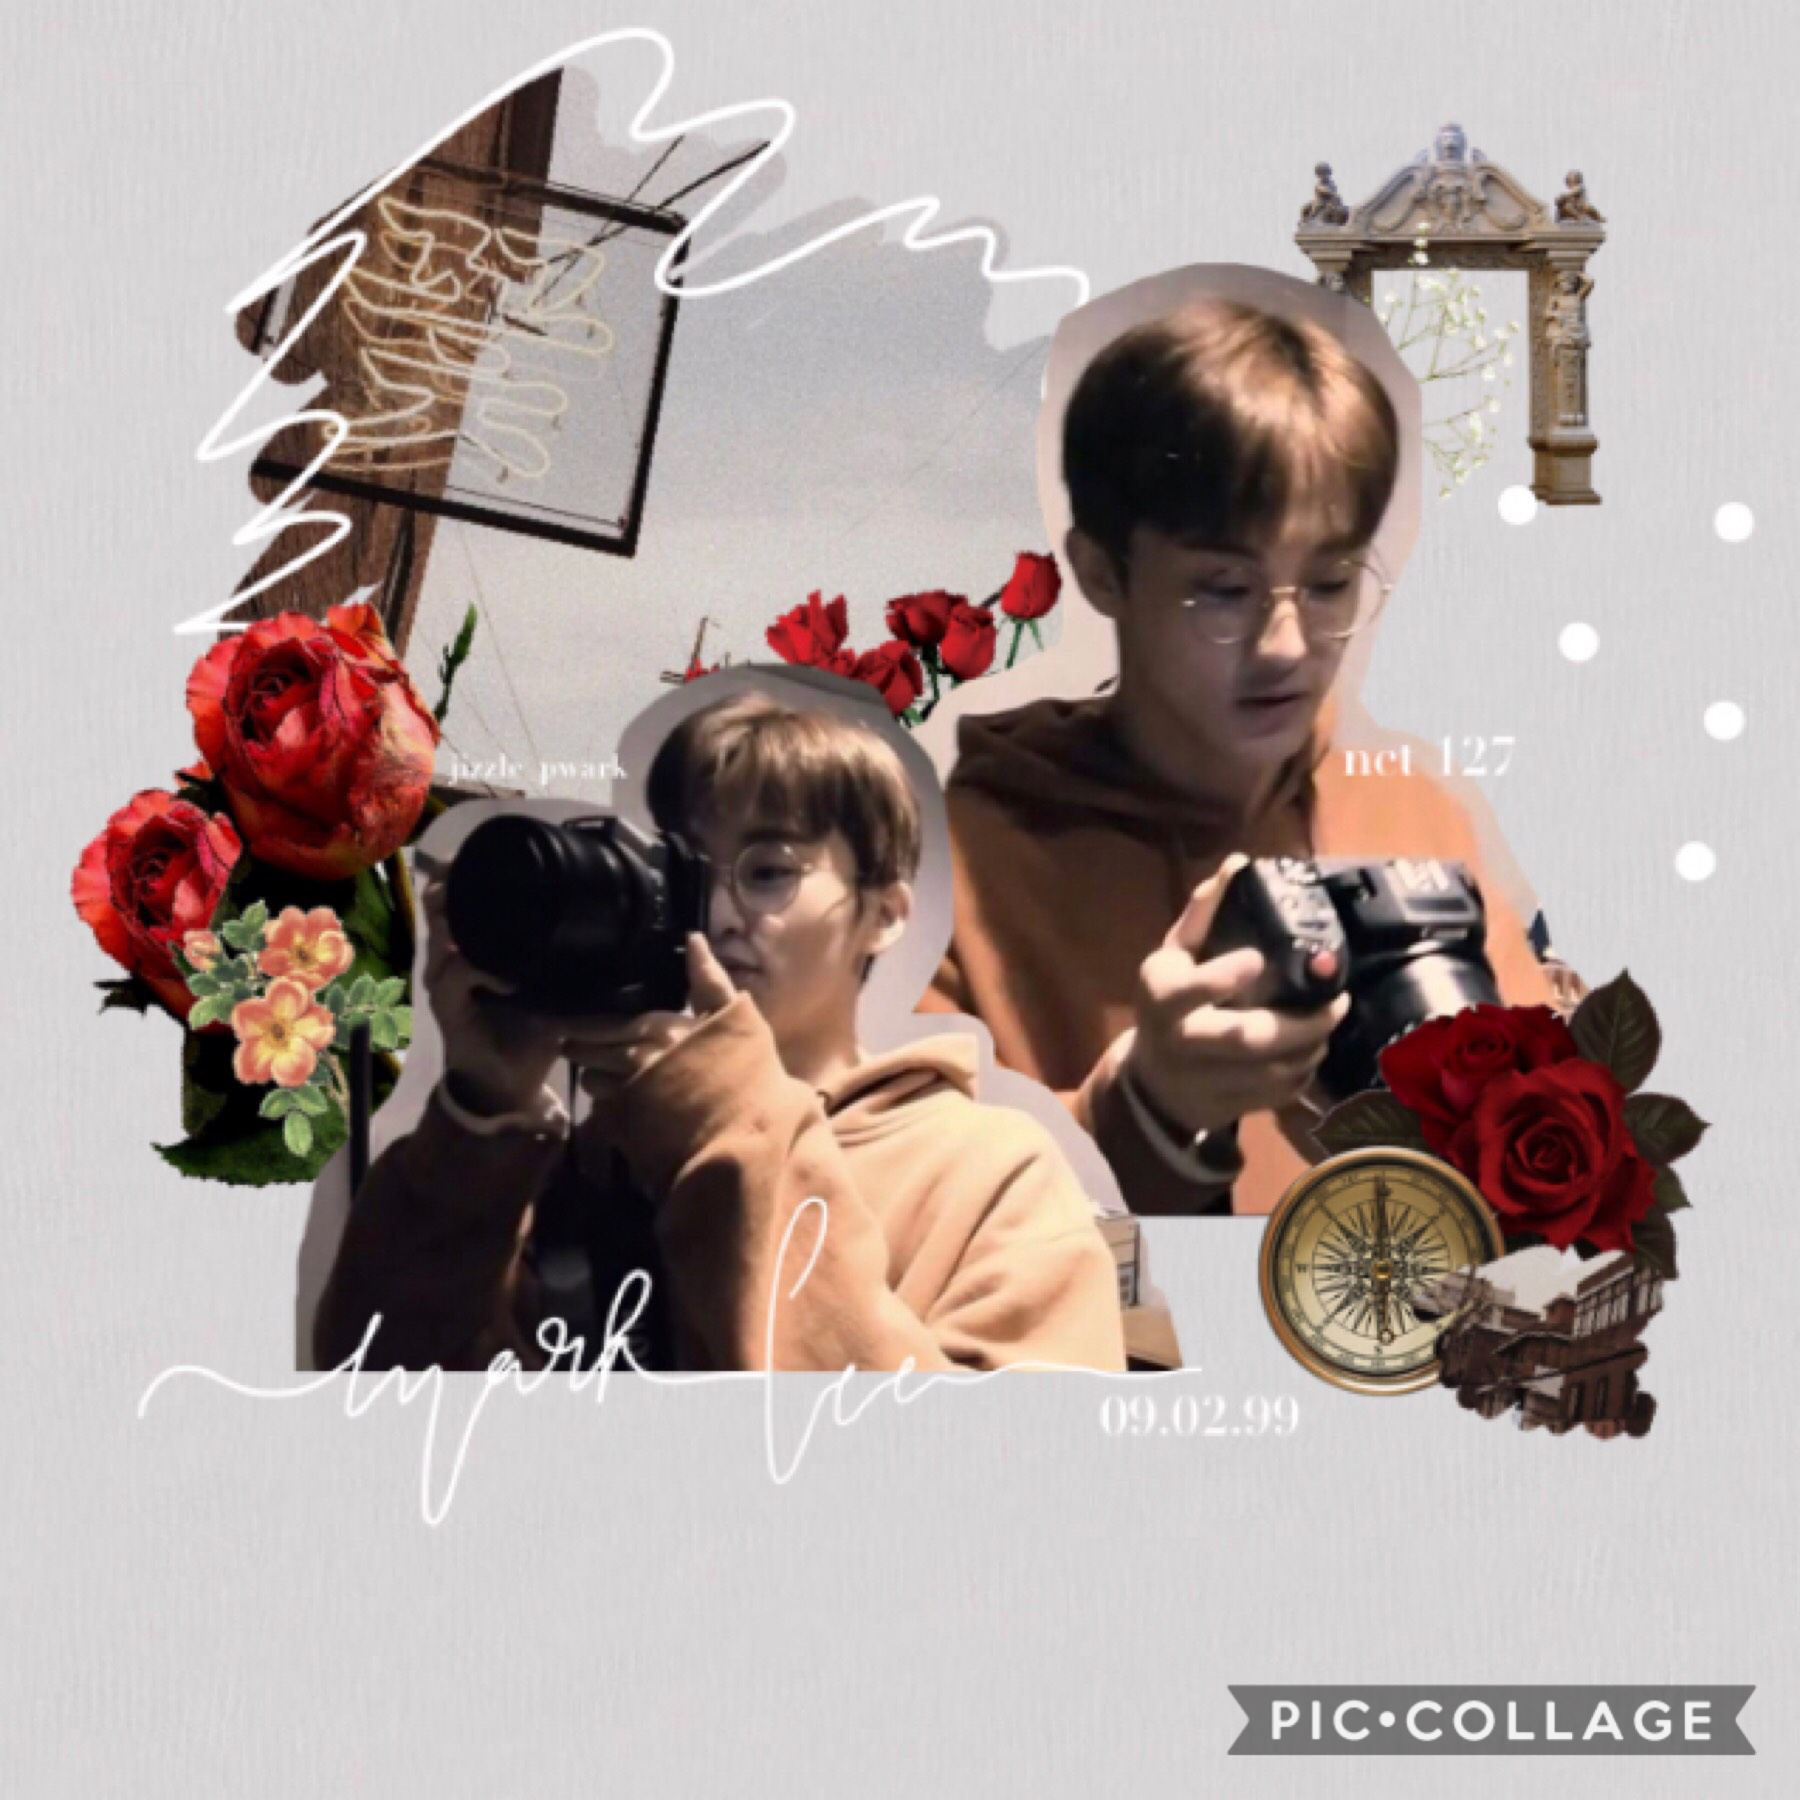 TAP MARK LEE EDIT INSPIRED BY THE TALENTED @itsxdrea!!!! 💜💜💜